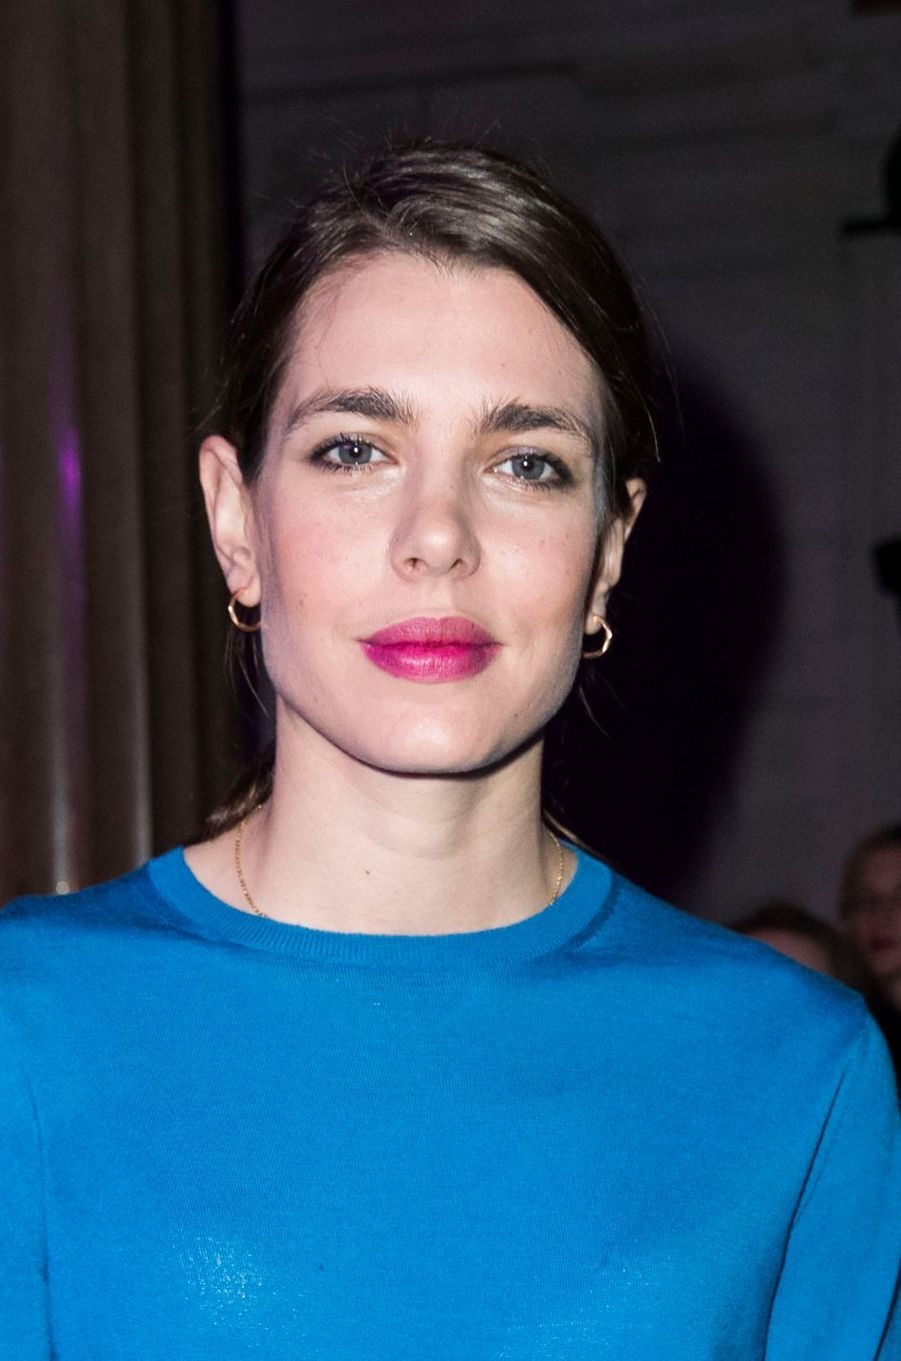 Charlotte Casiraghi à la Fashion Week à Paris, le 6 mars 2017